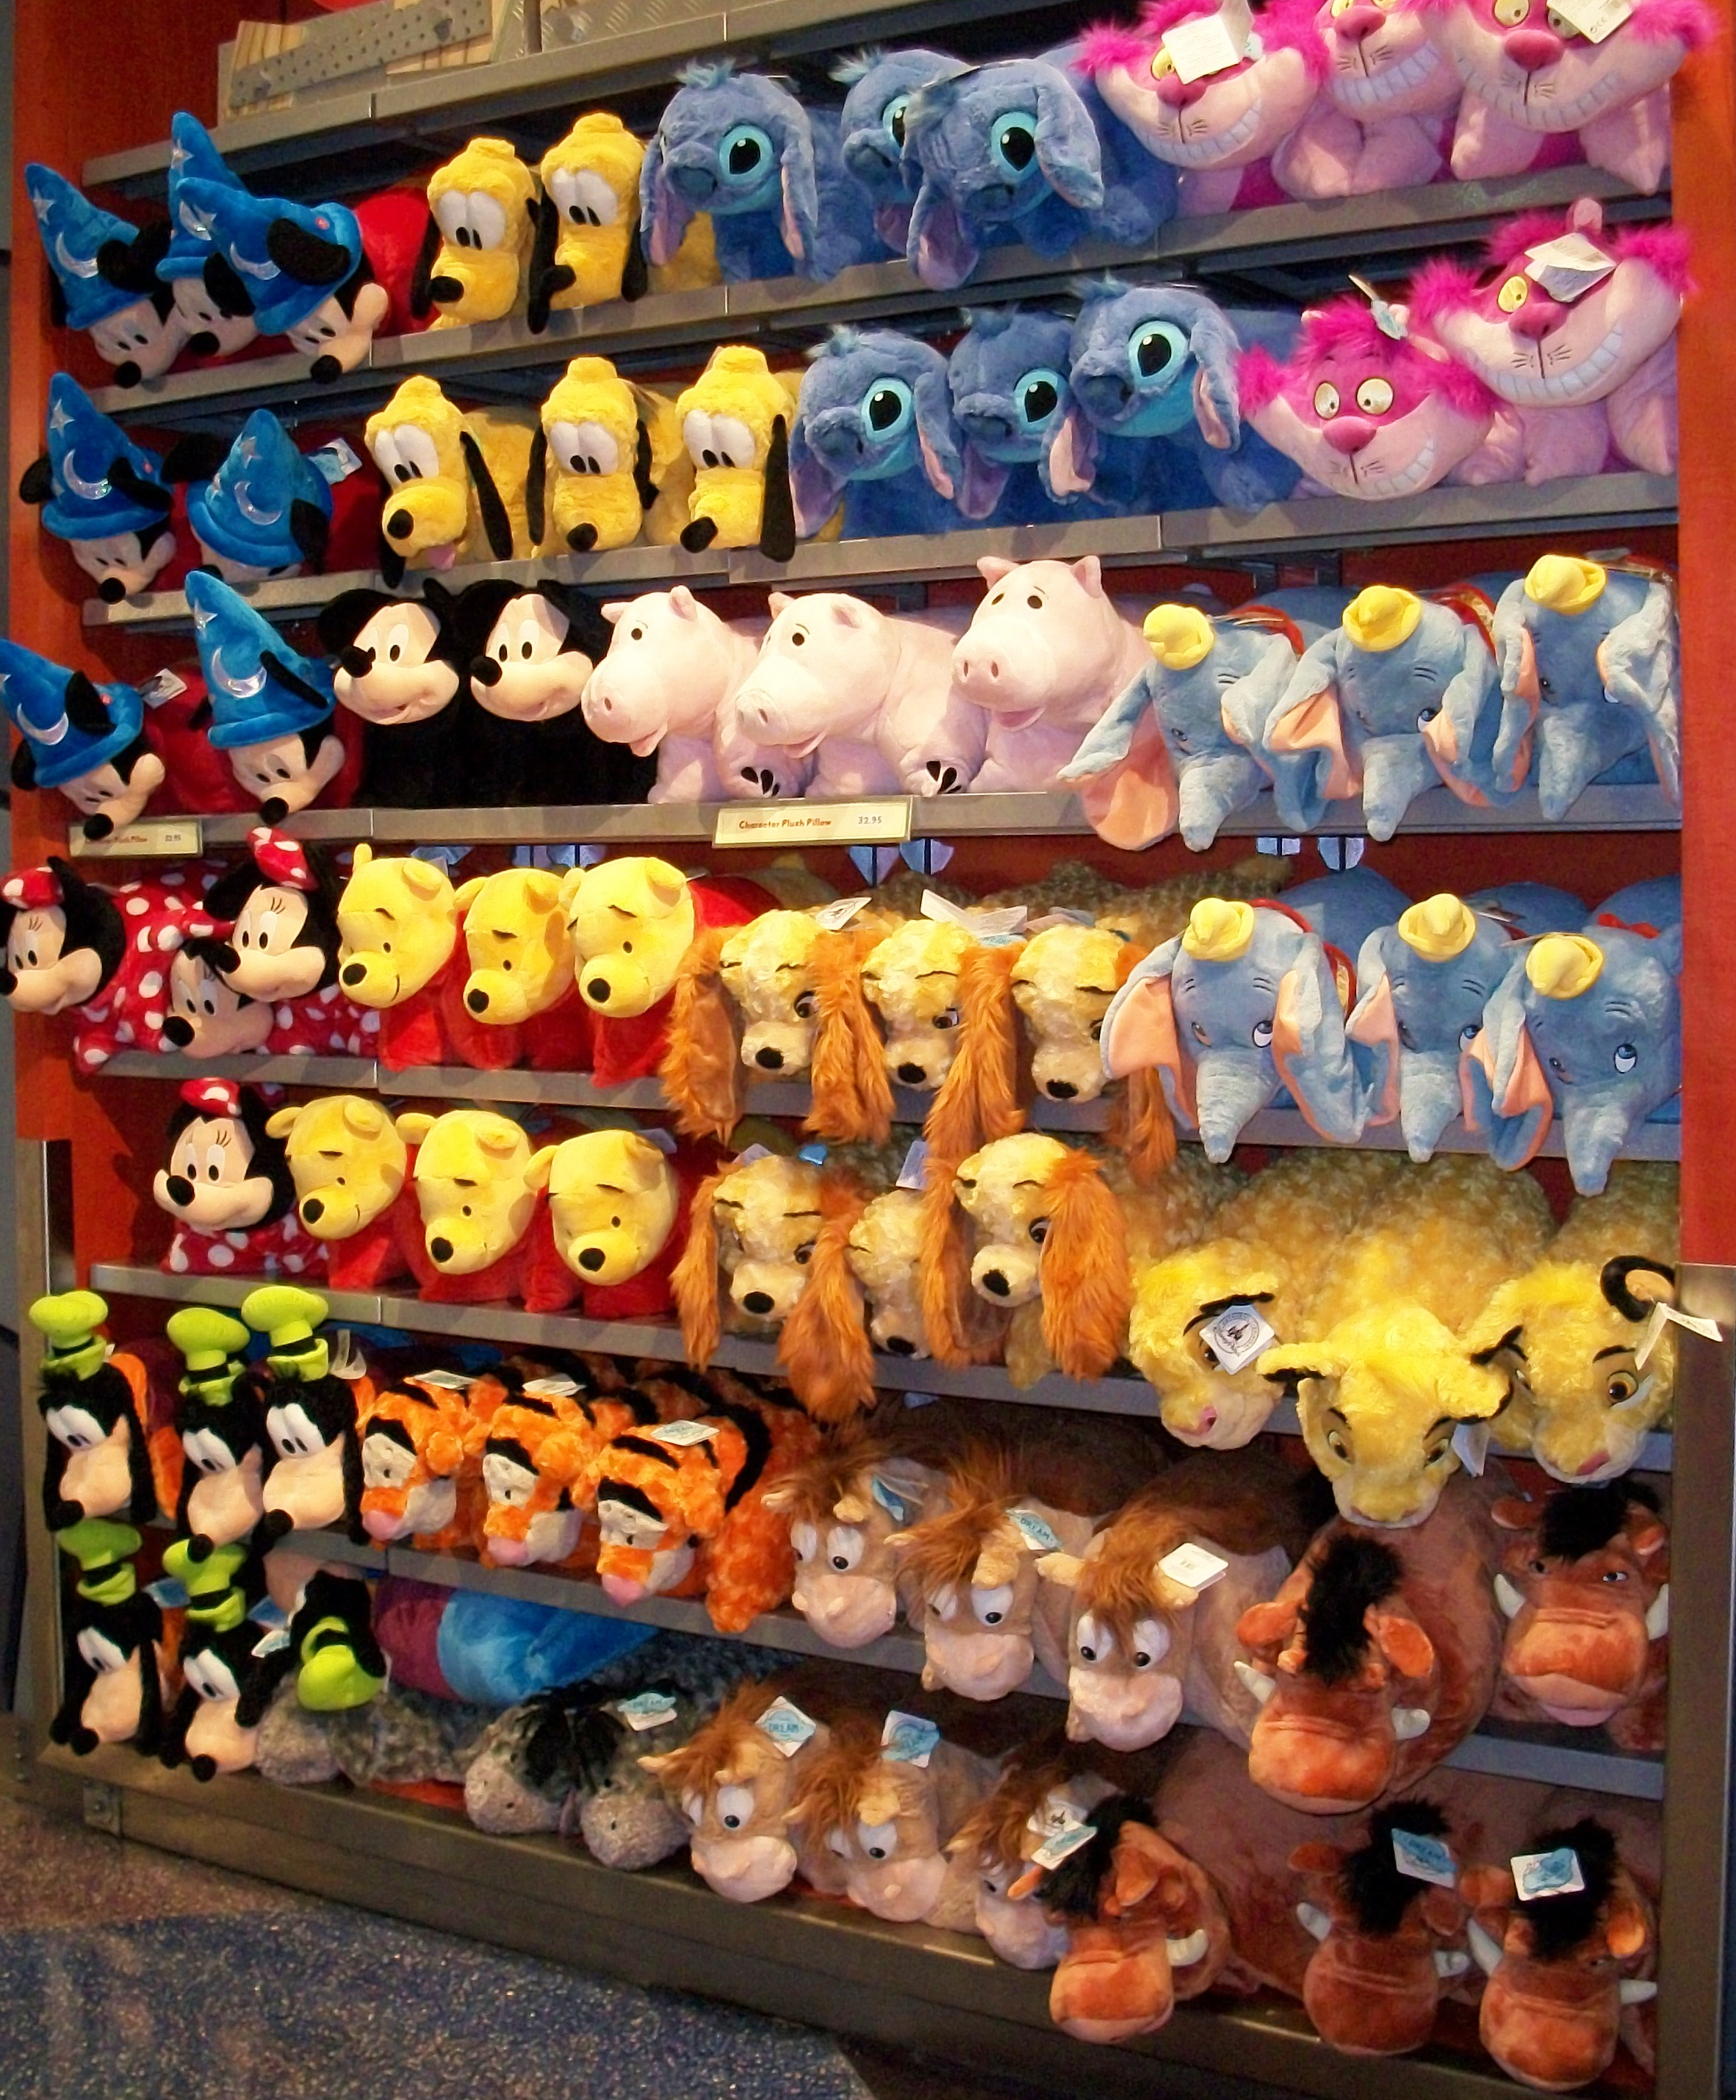 Disney Store Toys : Earport disney store at the orlando airport elly and